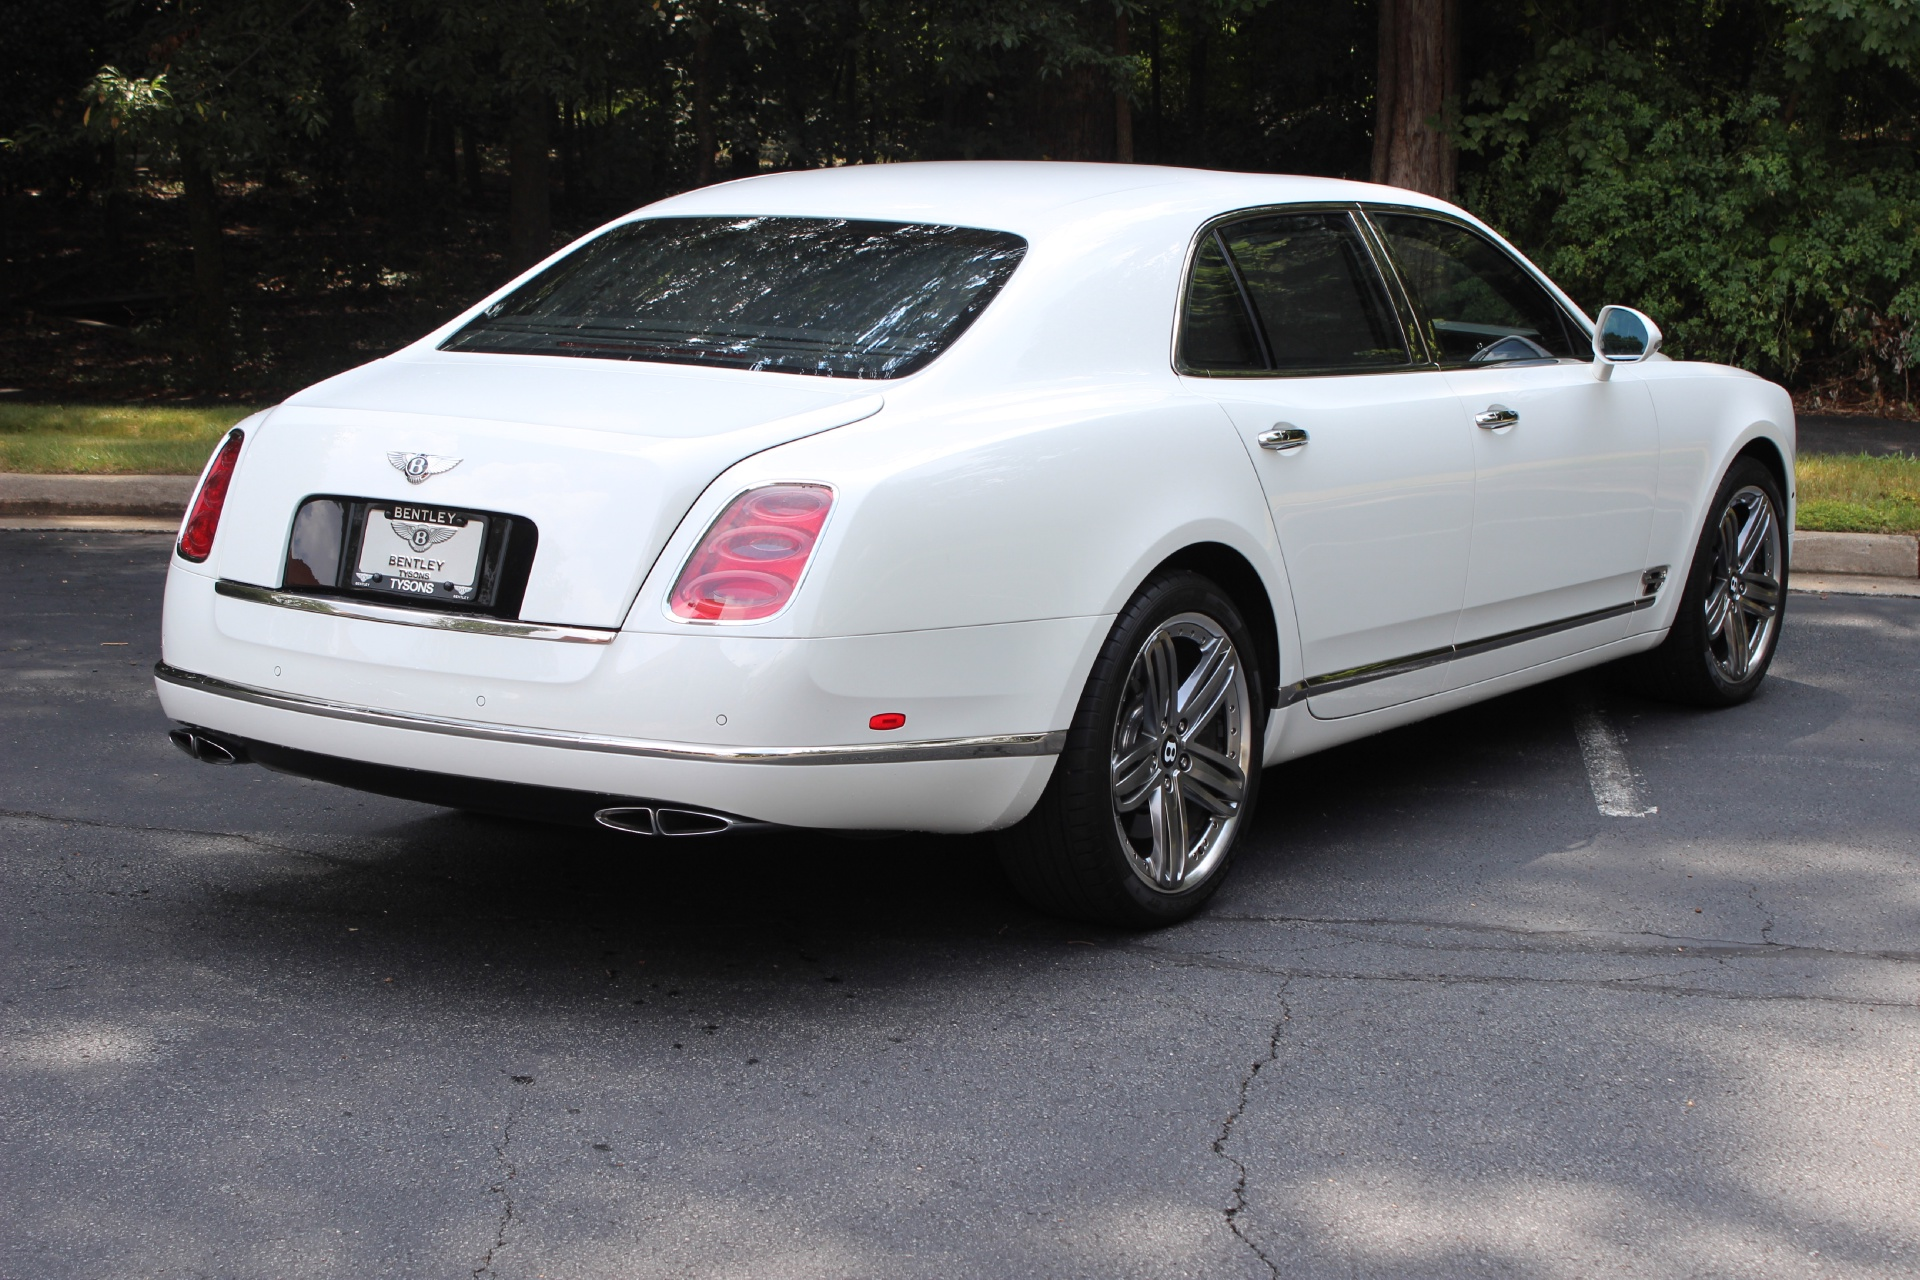 2013 Bentley Mulsanne Le Mans Edition Stock # P018515 for sale near ...